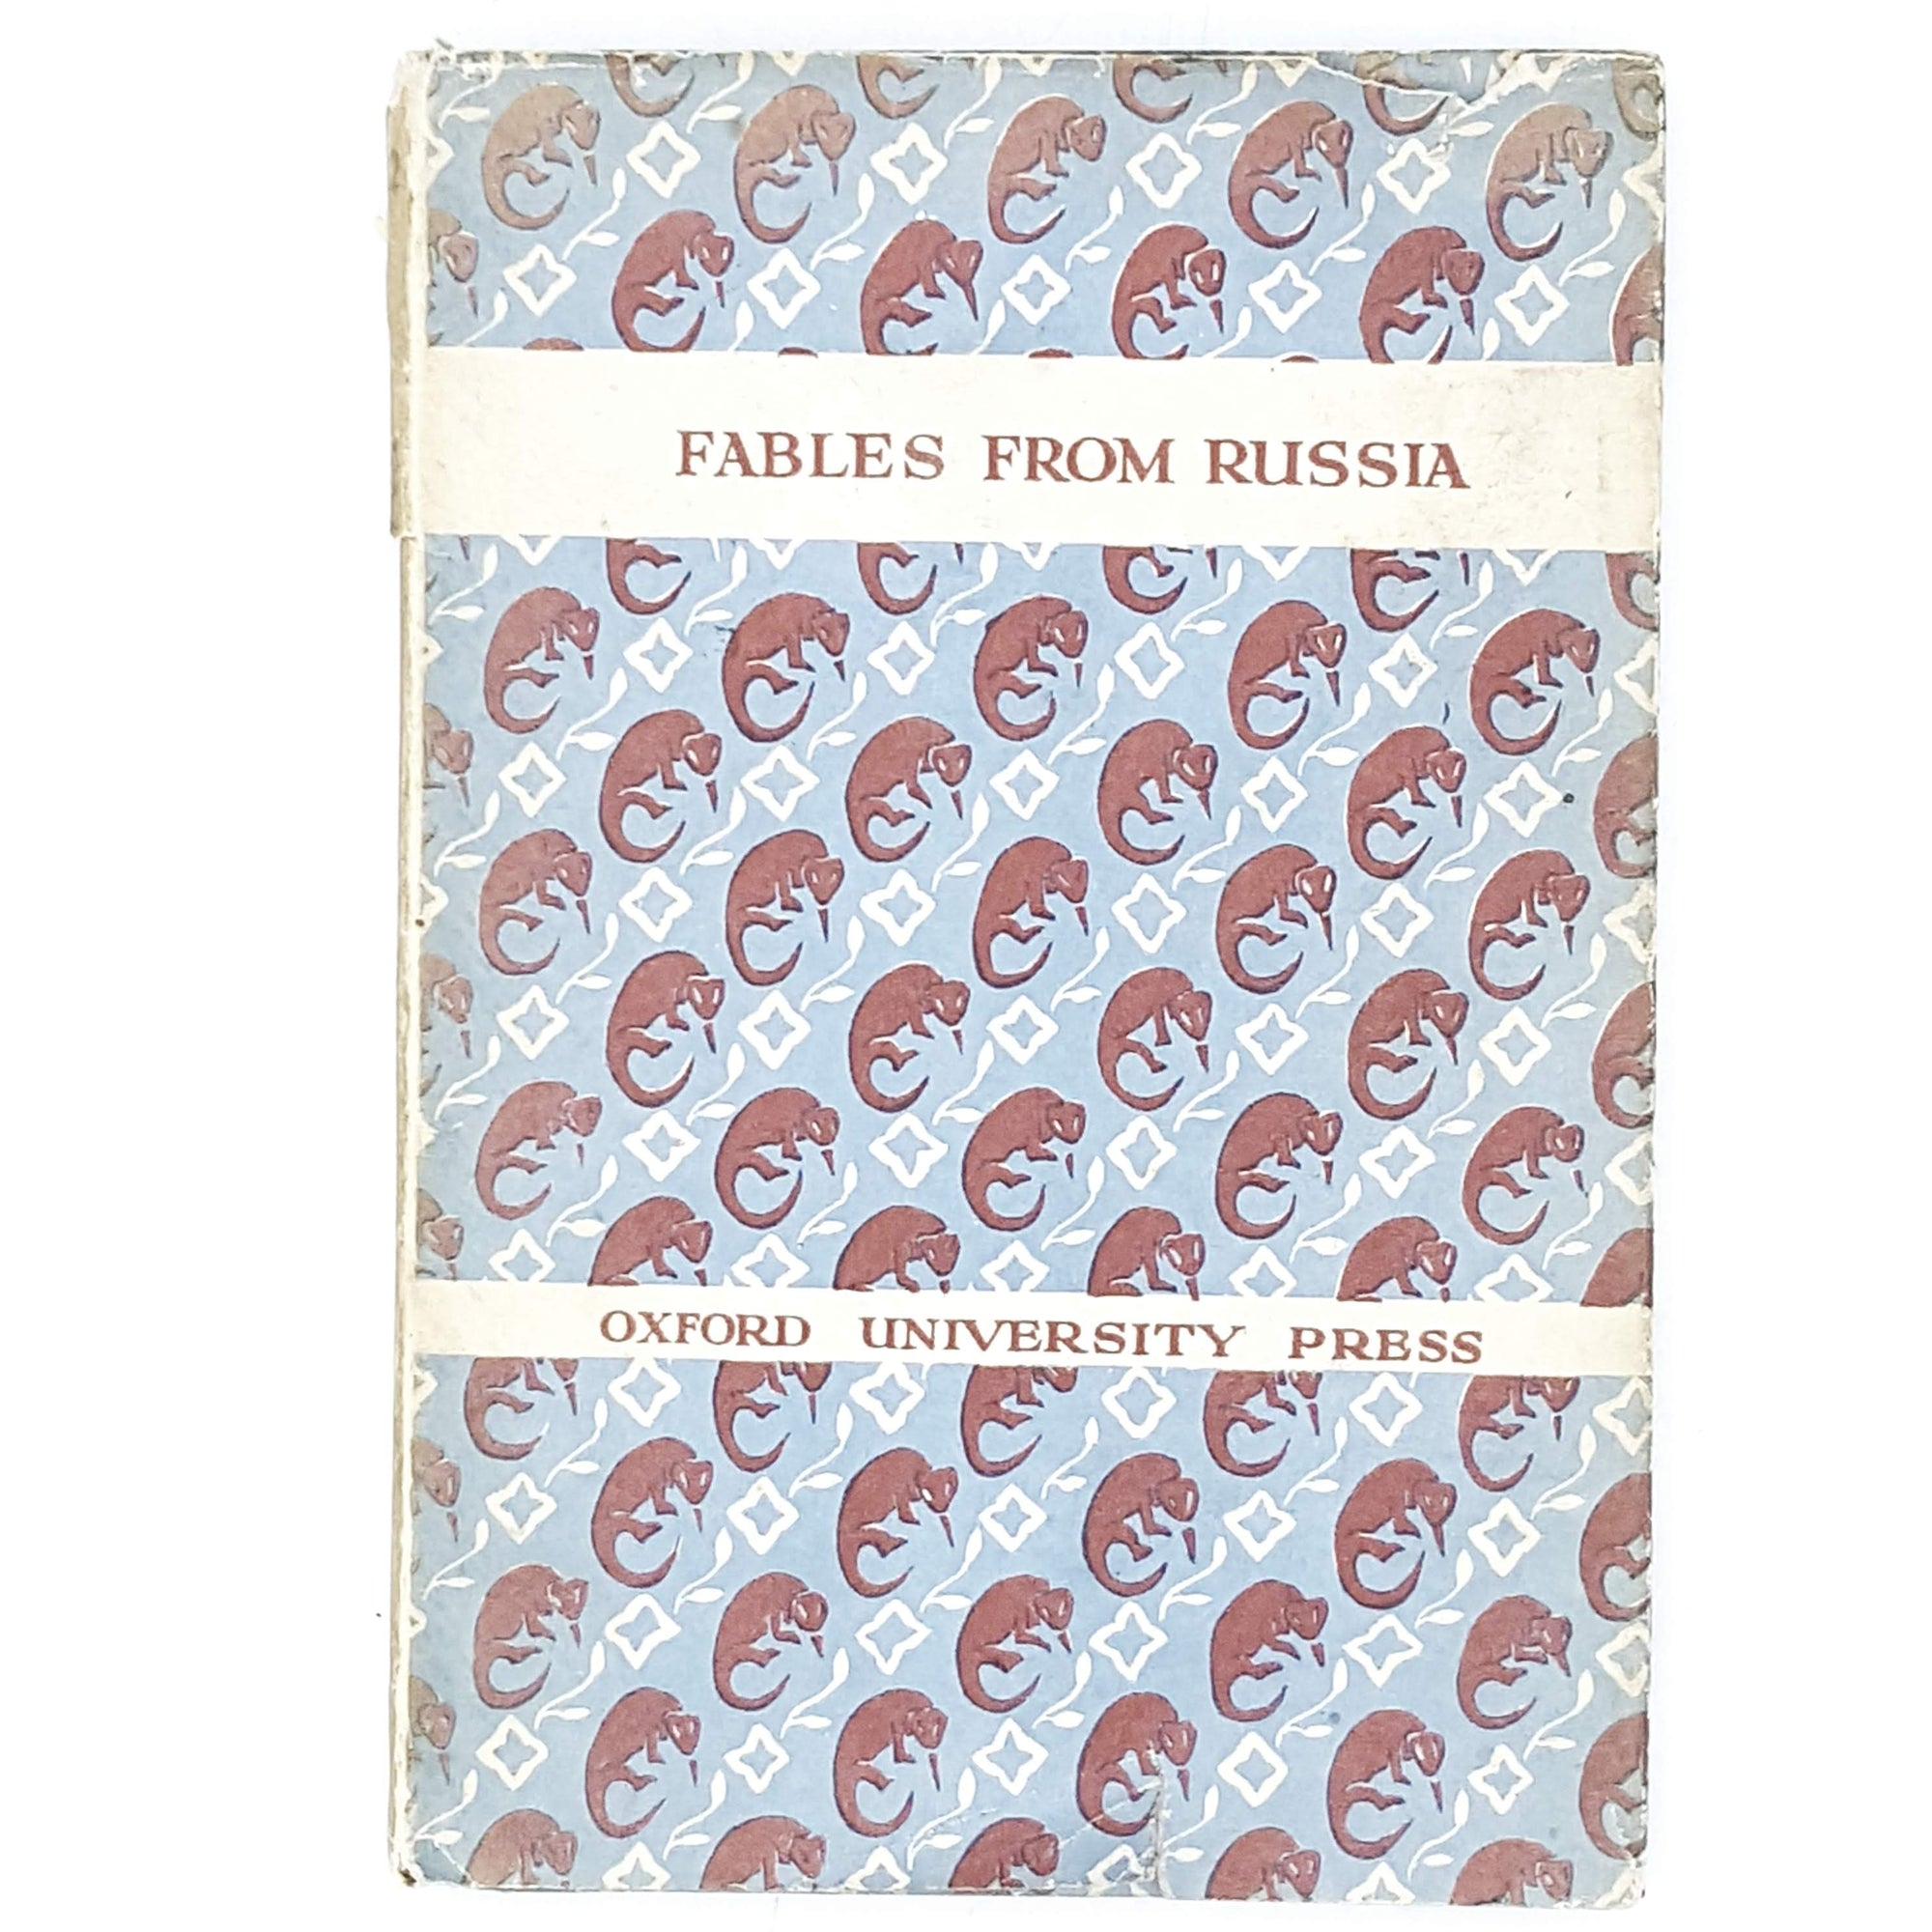 Illustrated Fables from Russia by Ivan Krilov 1943